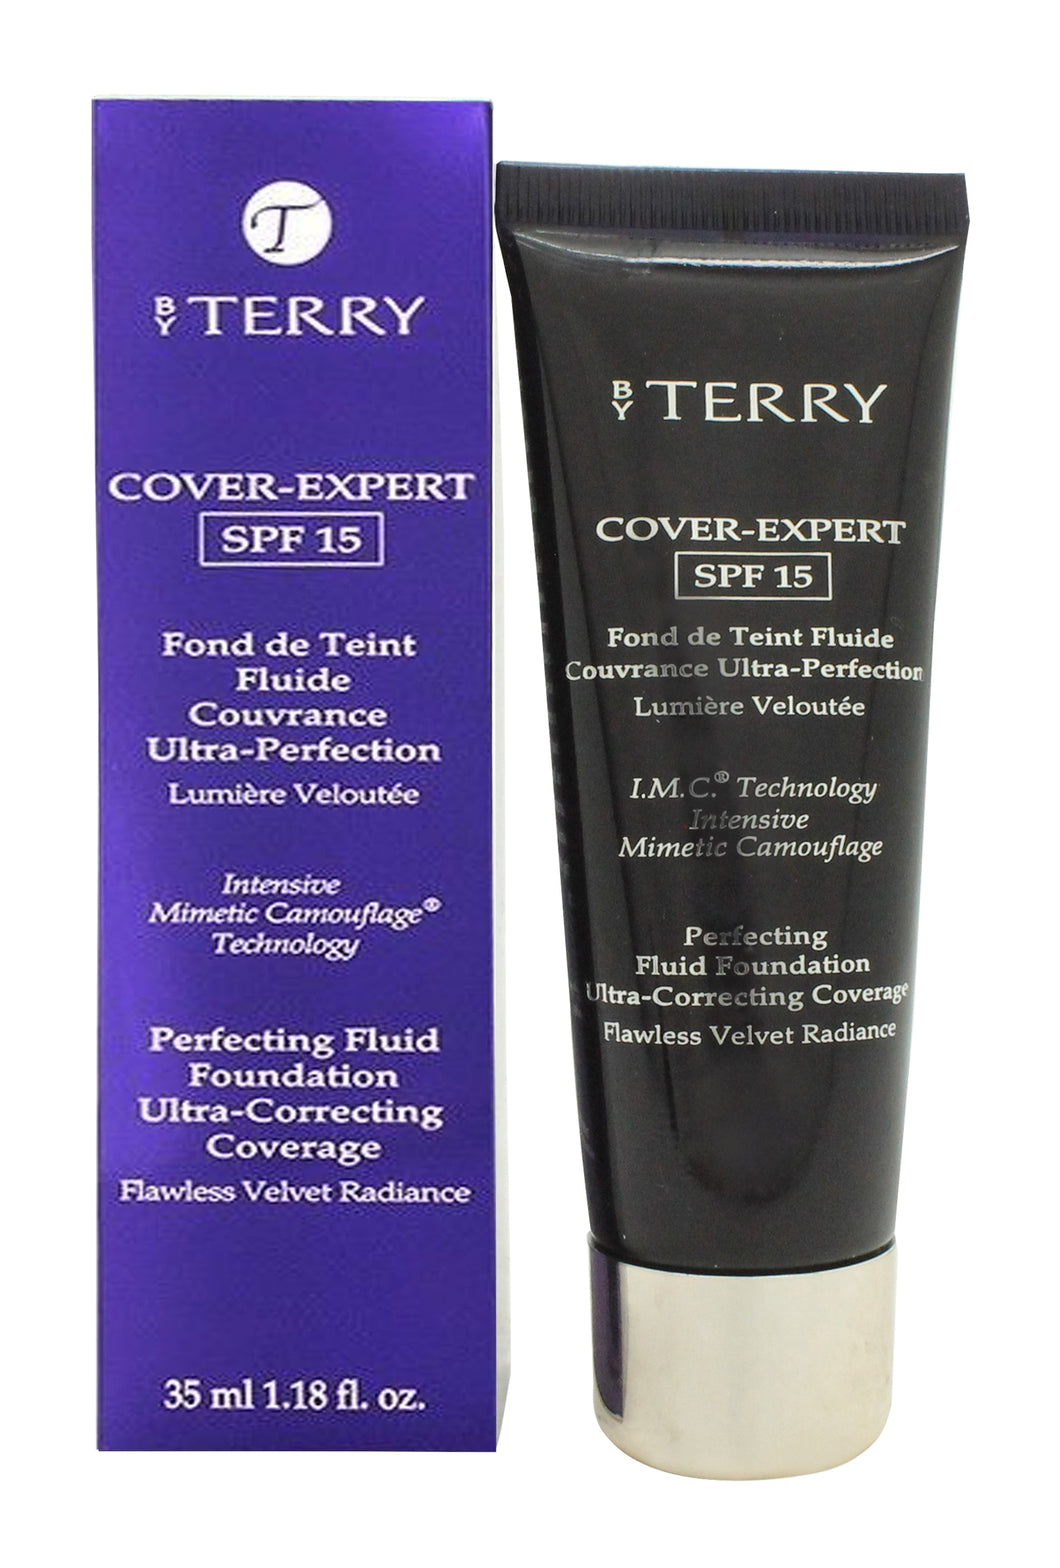 By Terry Cover Expert Perfecting Fluid Foundation SPF15 35ml - N2 Neutral Beige